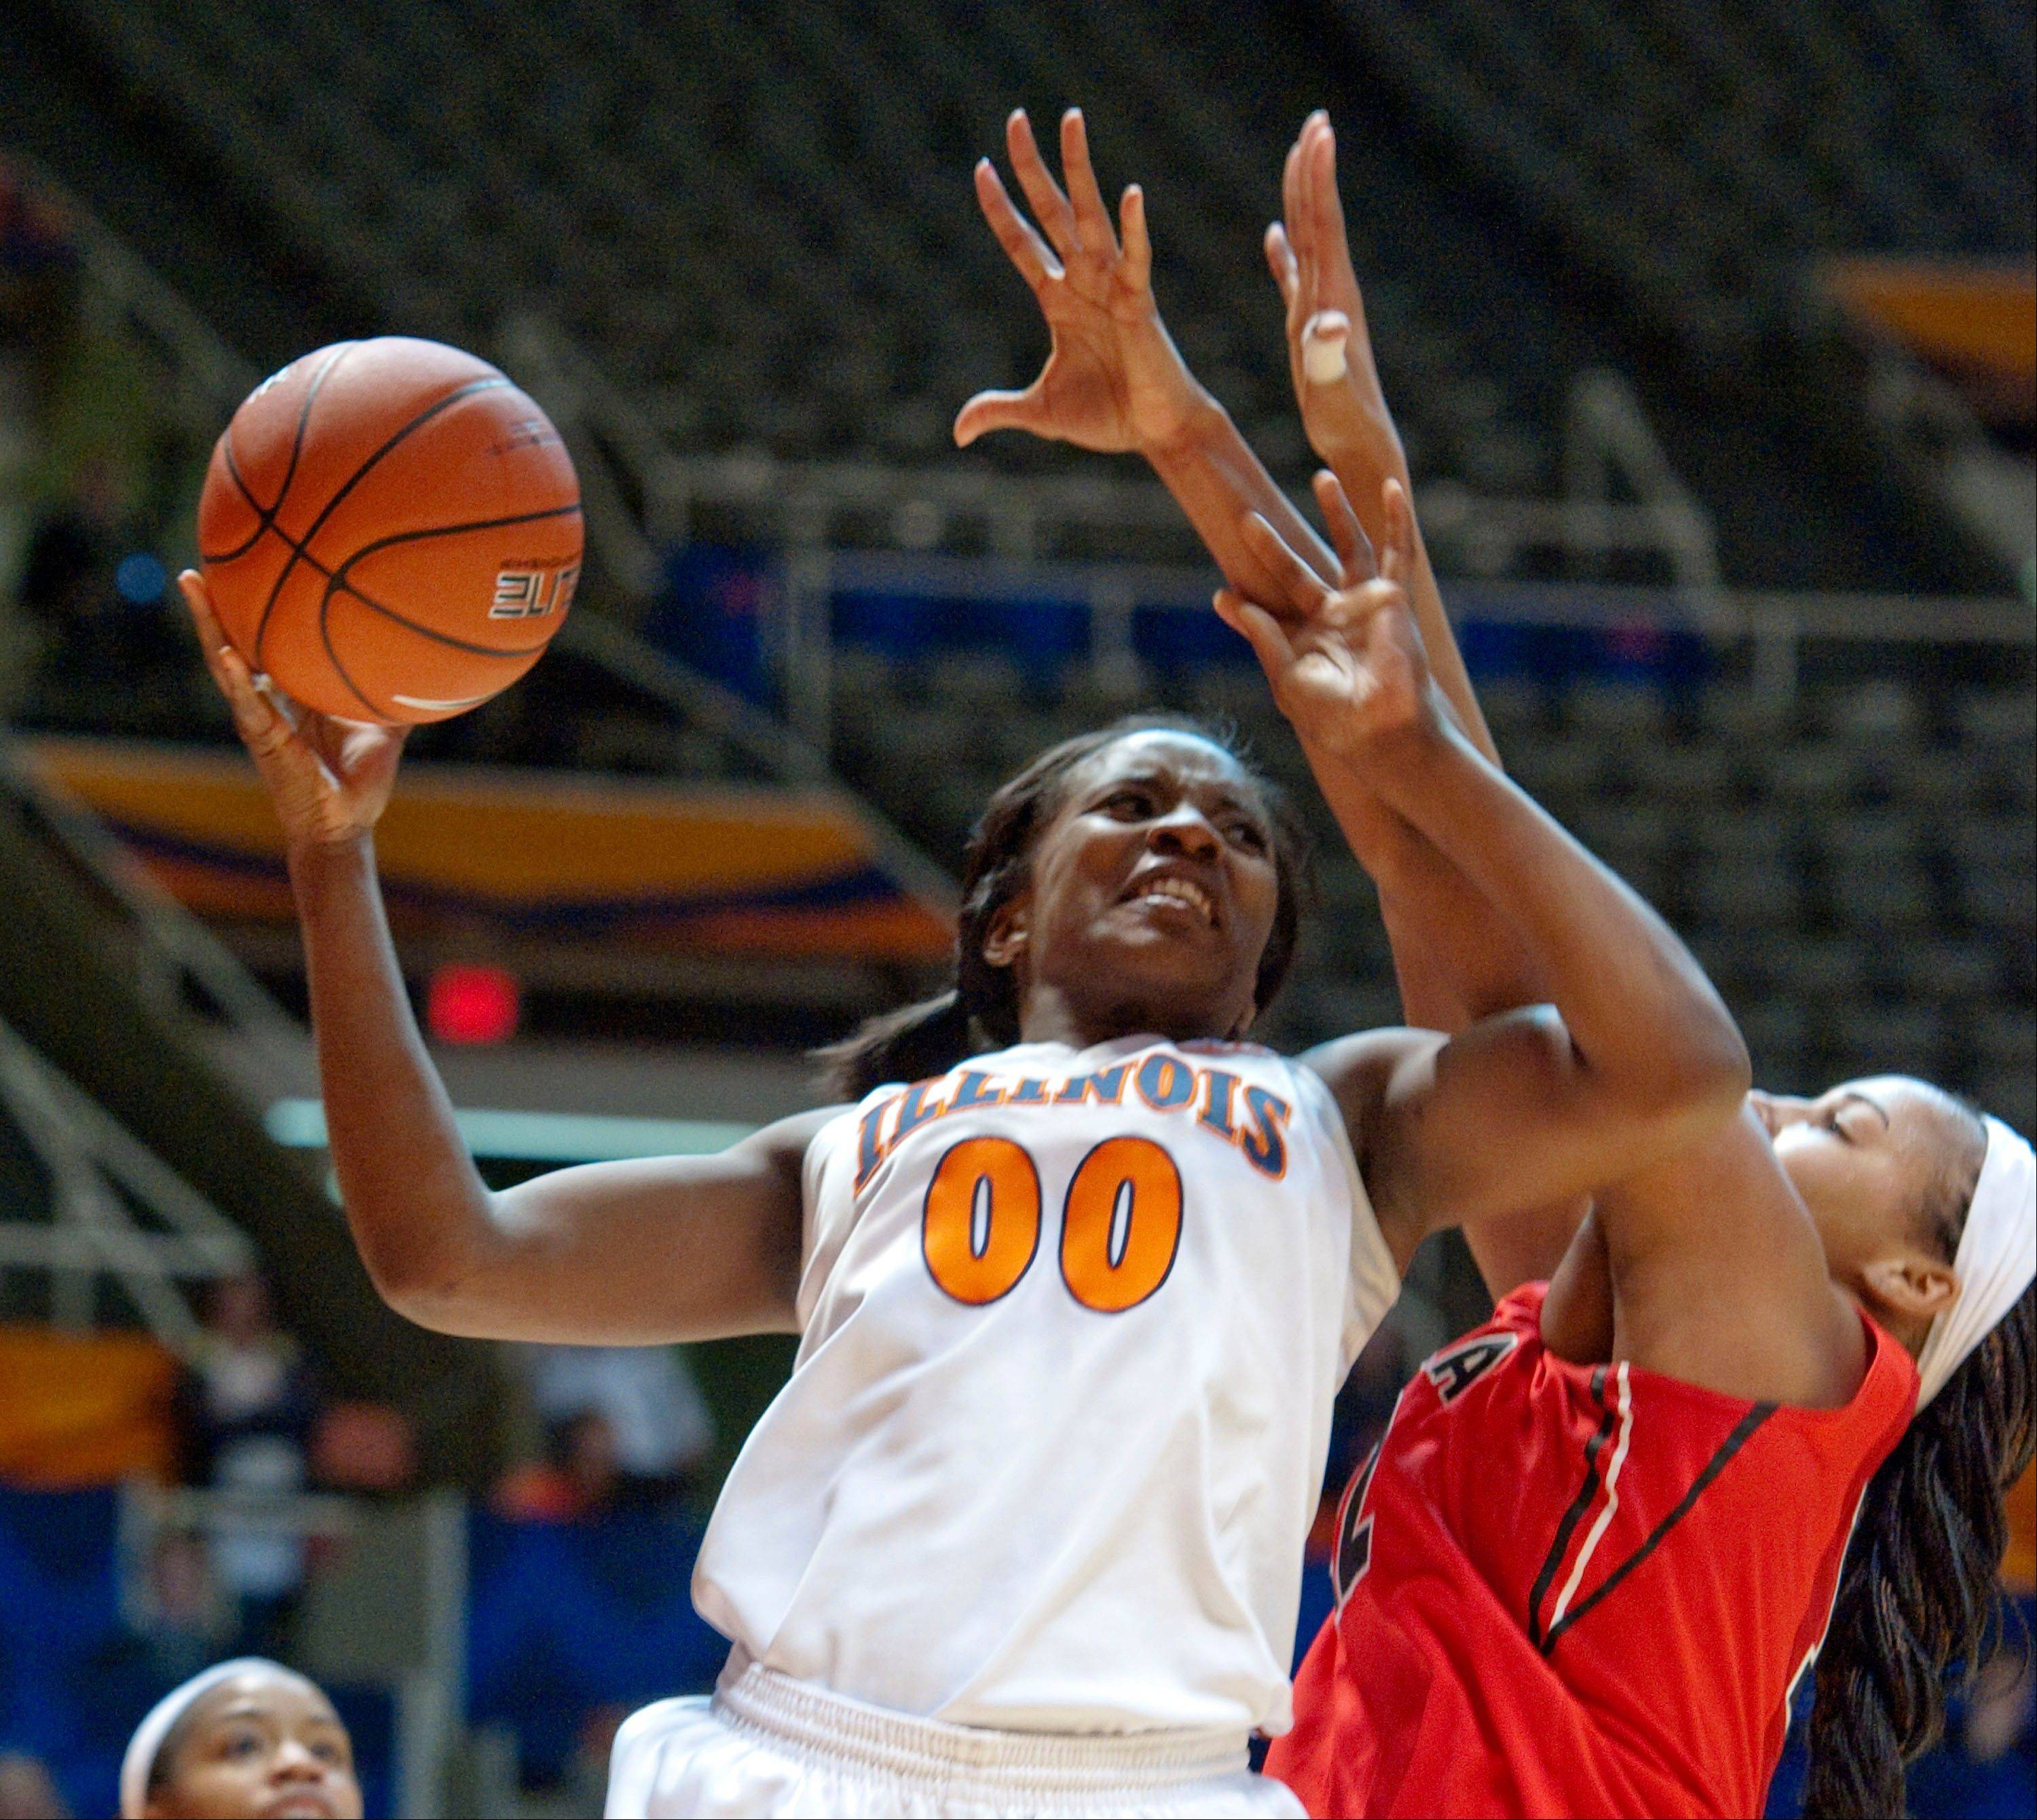 Illinois' Karisma Penn works against Georgia's Jasmine Hassell during the second half Friday in Champaign, Ill. Illinois won 70-59.